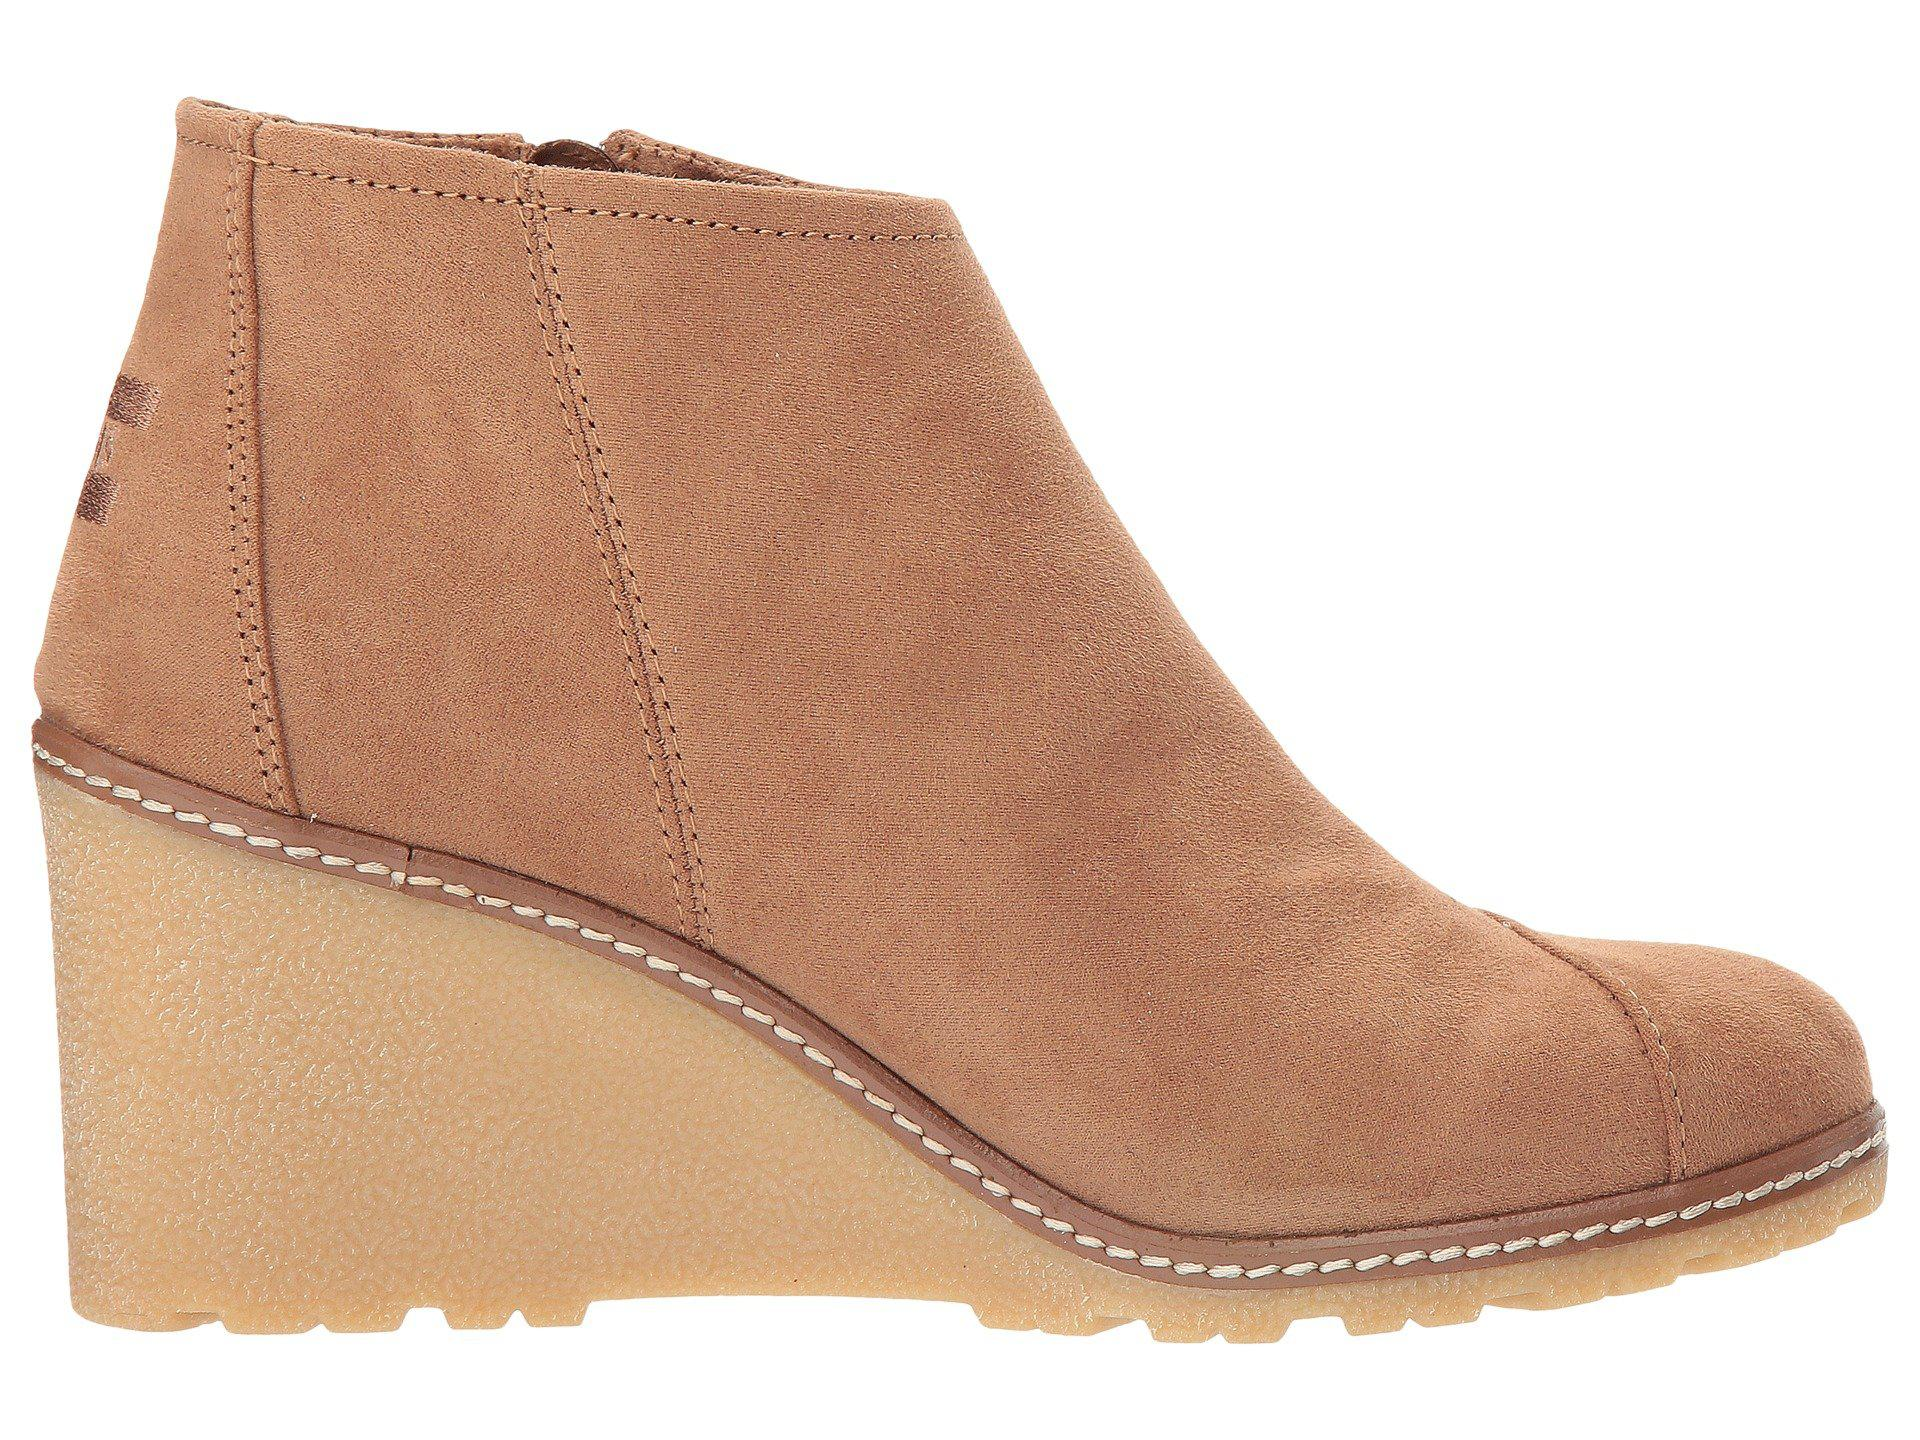 TOMS Rubber Avery Wedge in Brown - Lyst